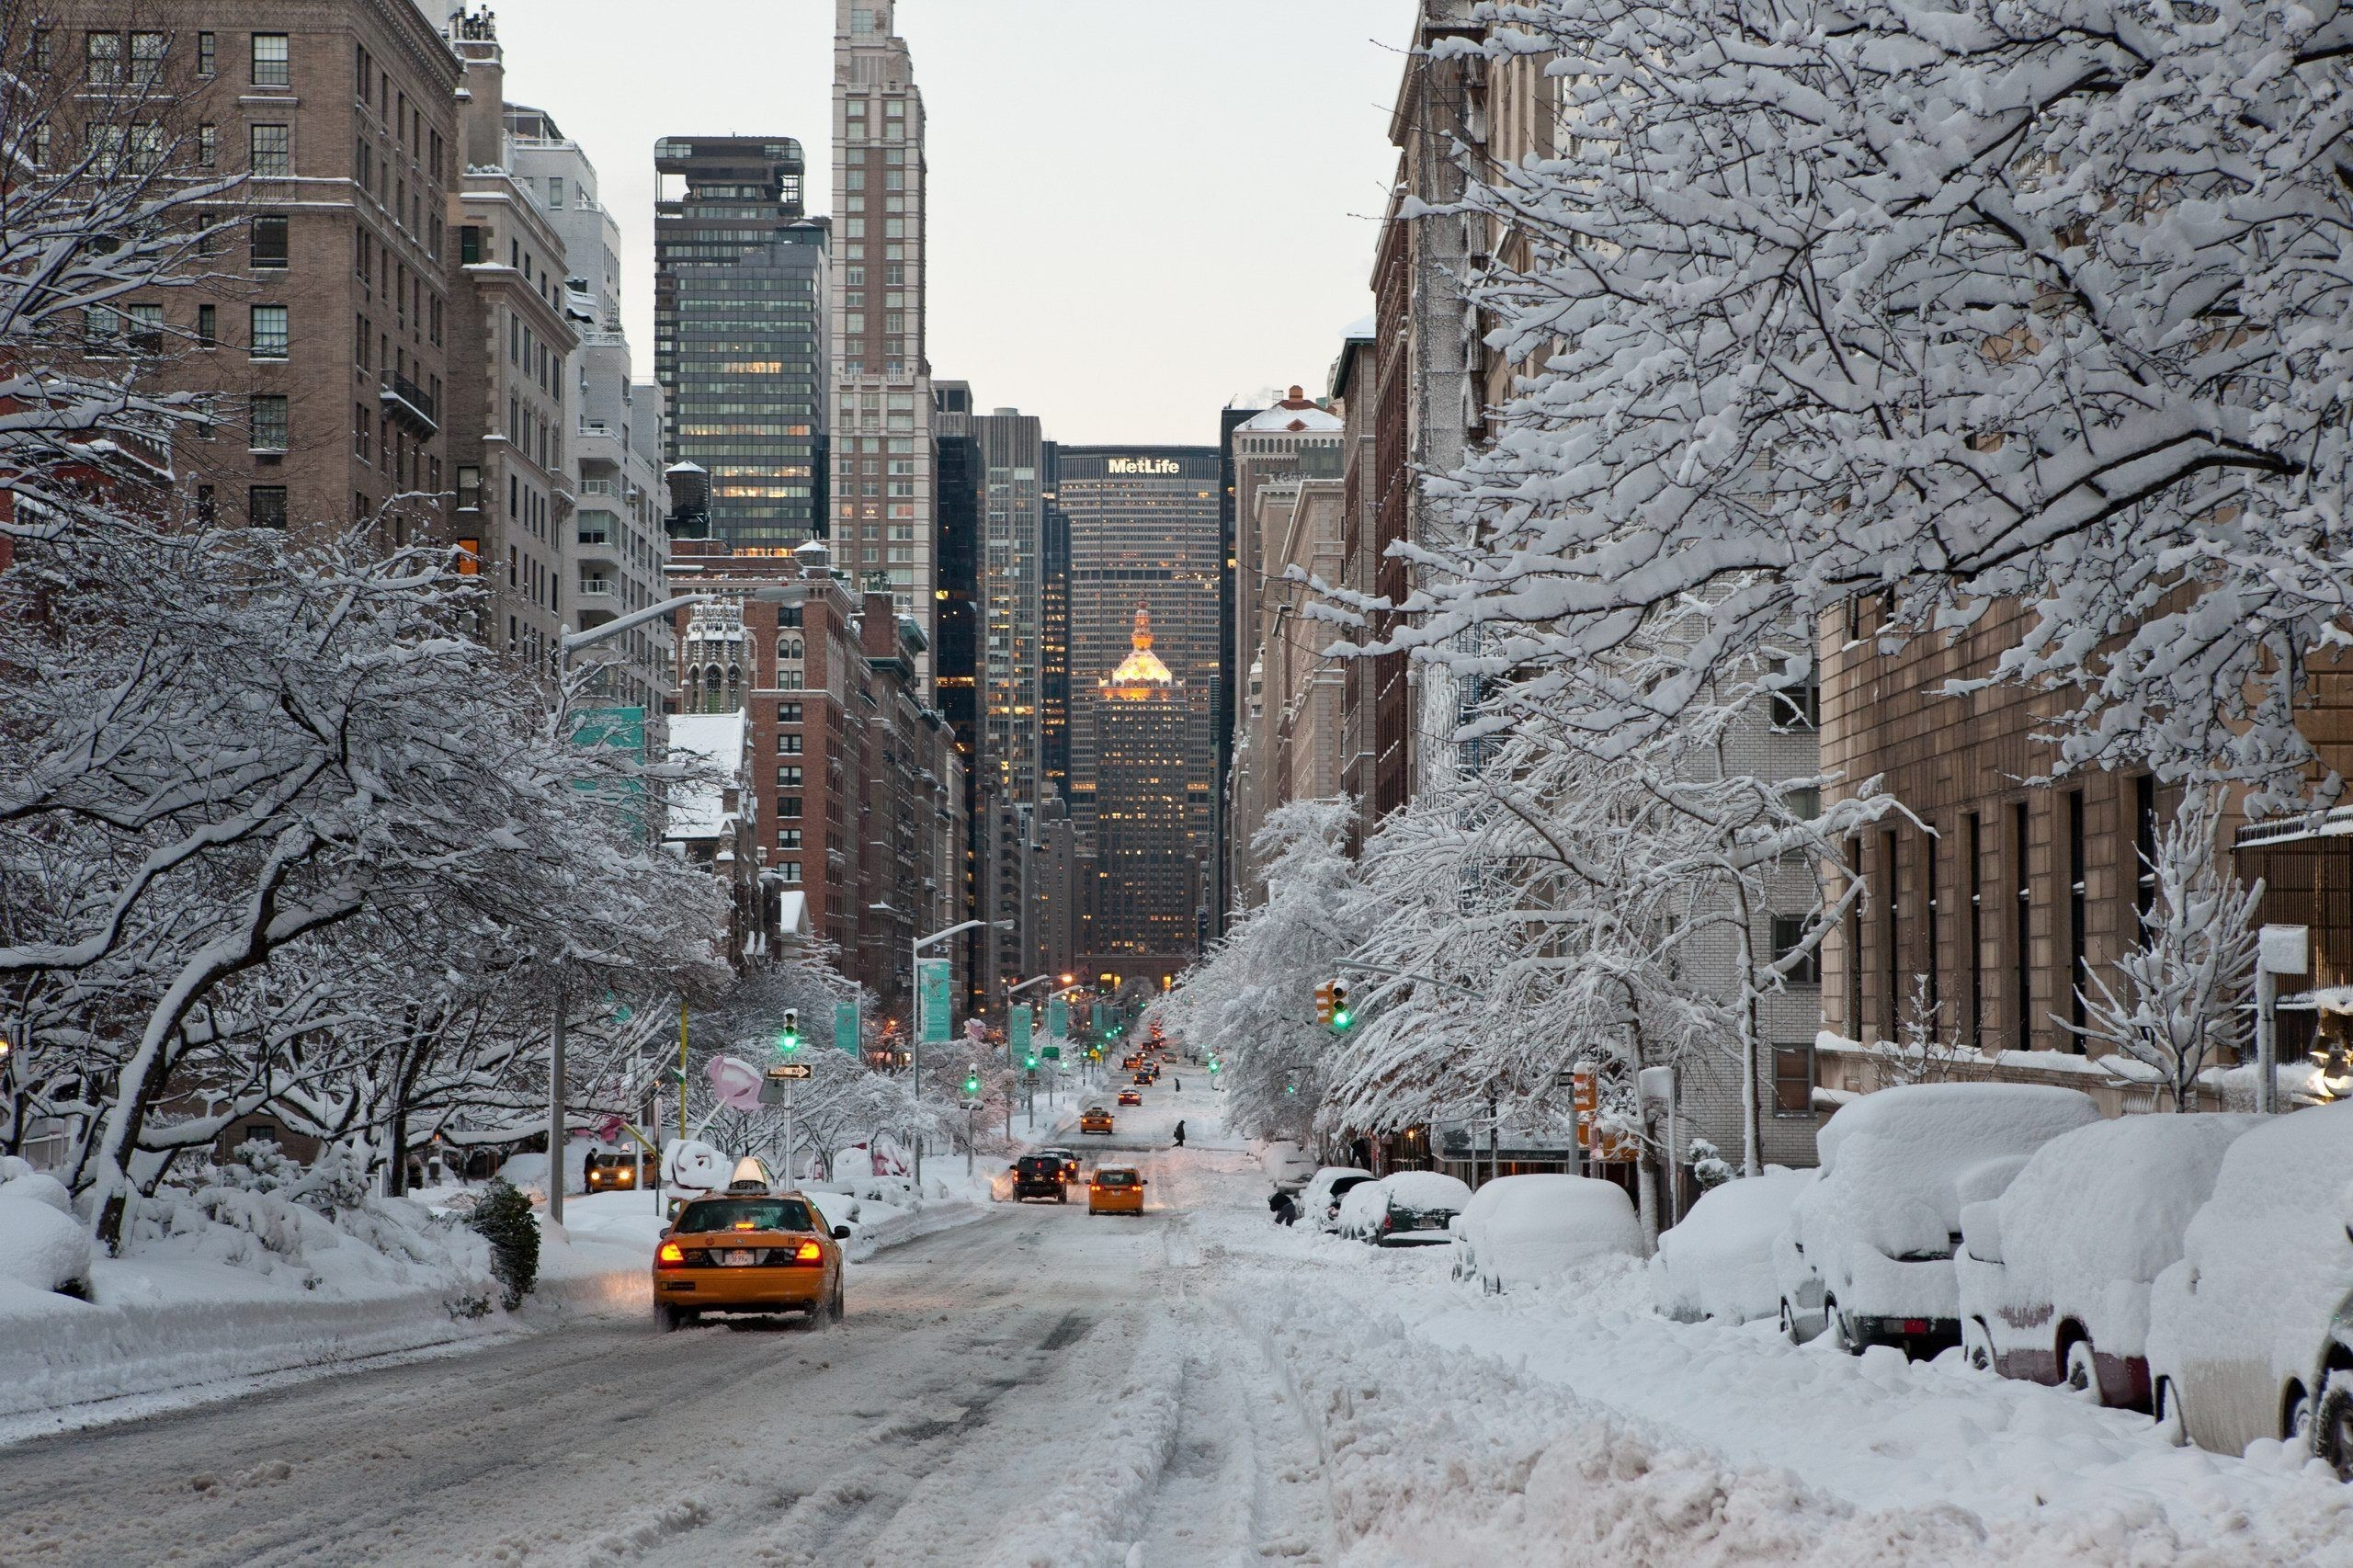 Winter in new york city wallpaper | Wallpaper Wide HD